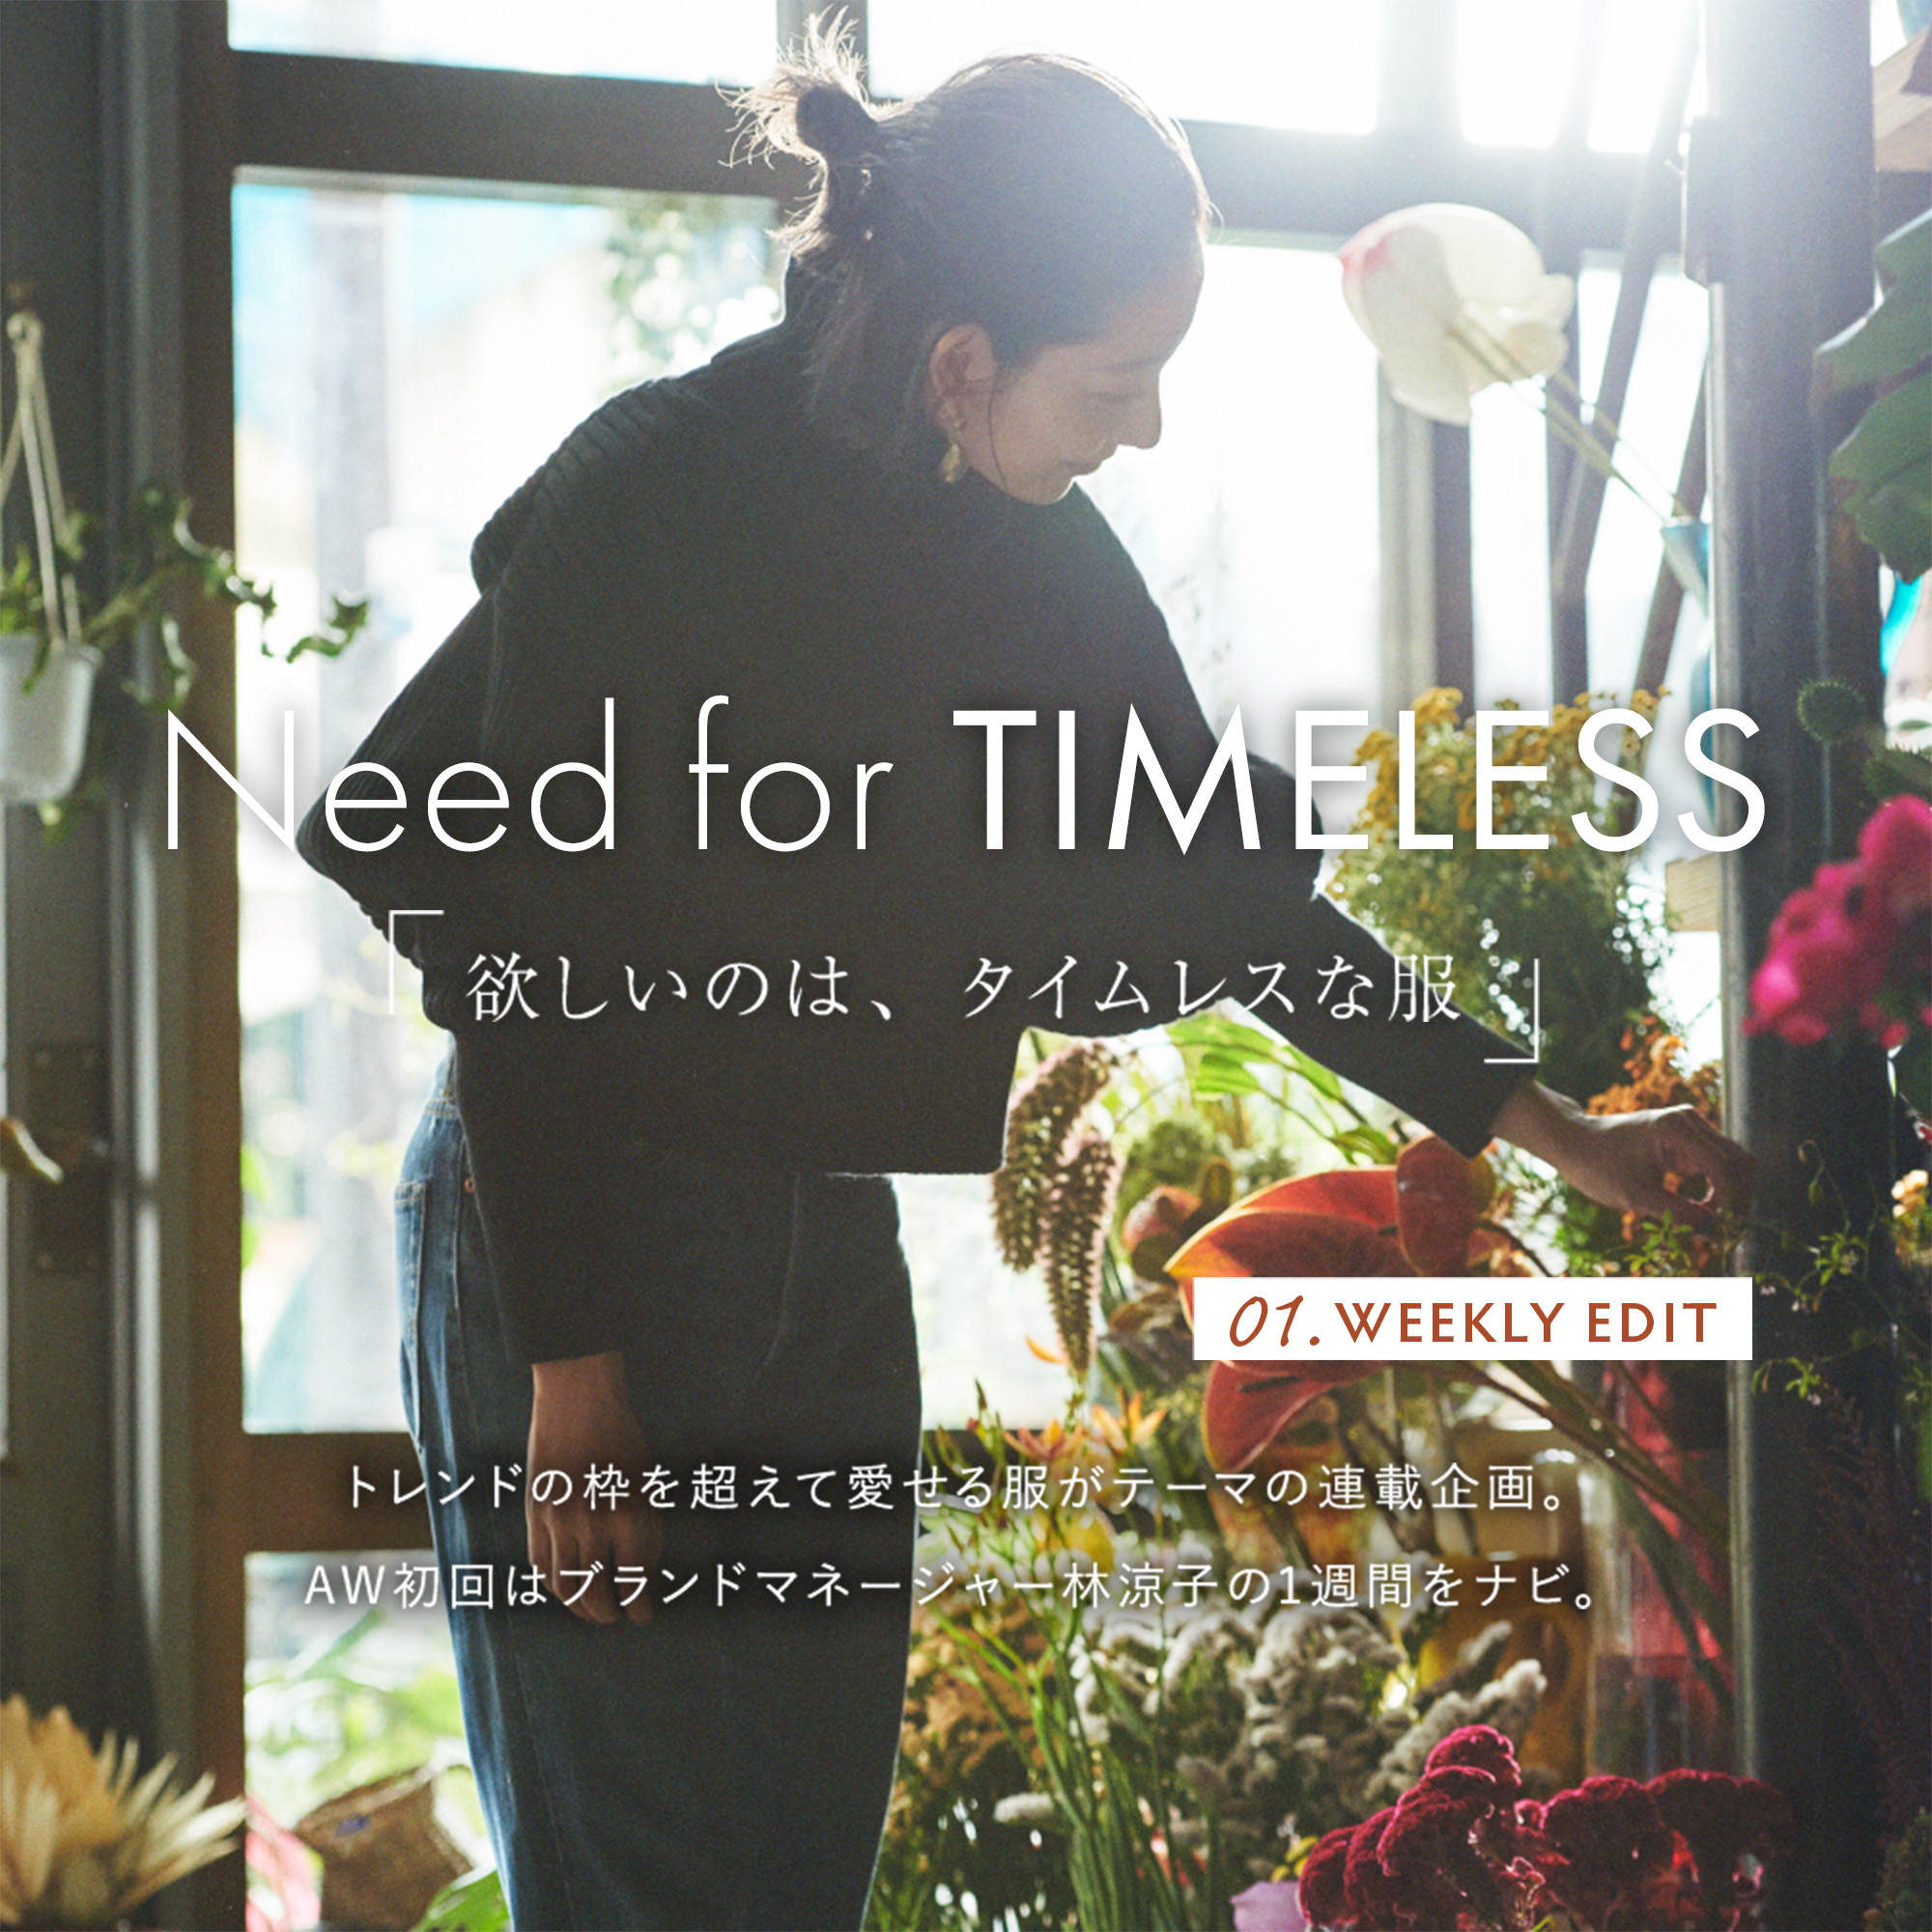 Need for TIMELESS「欲しいのは、タイムレスな服」